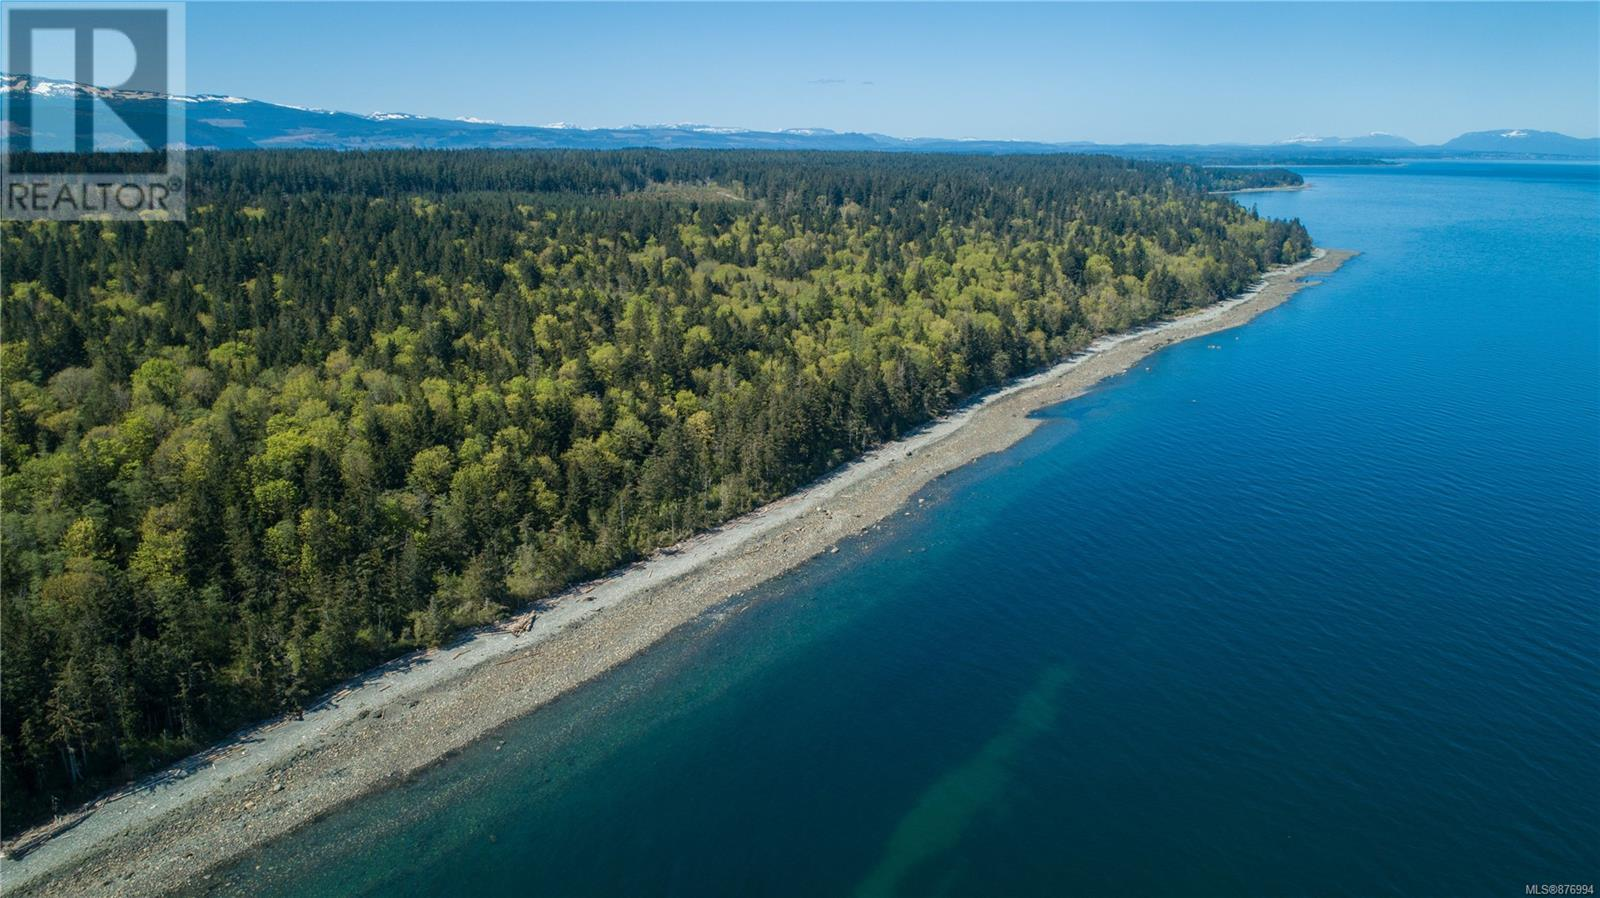 MLS® #876994 - Courtenay For sale Image #2